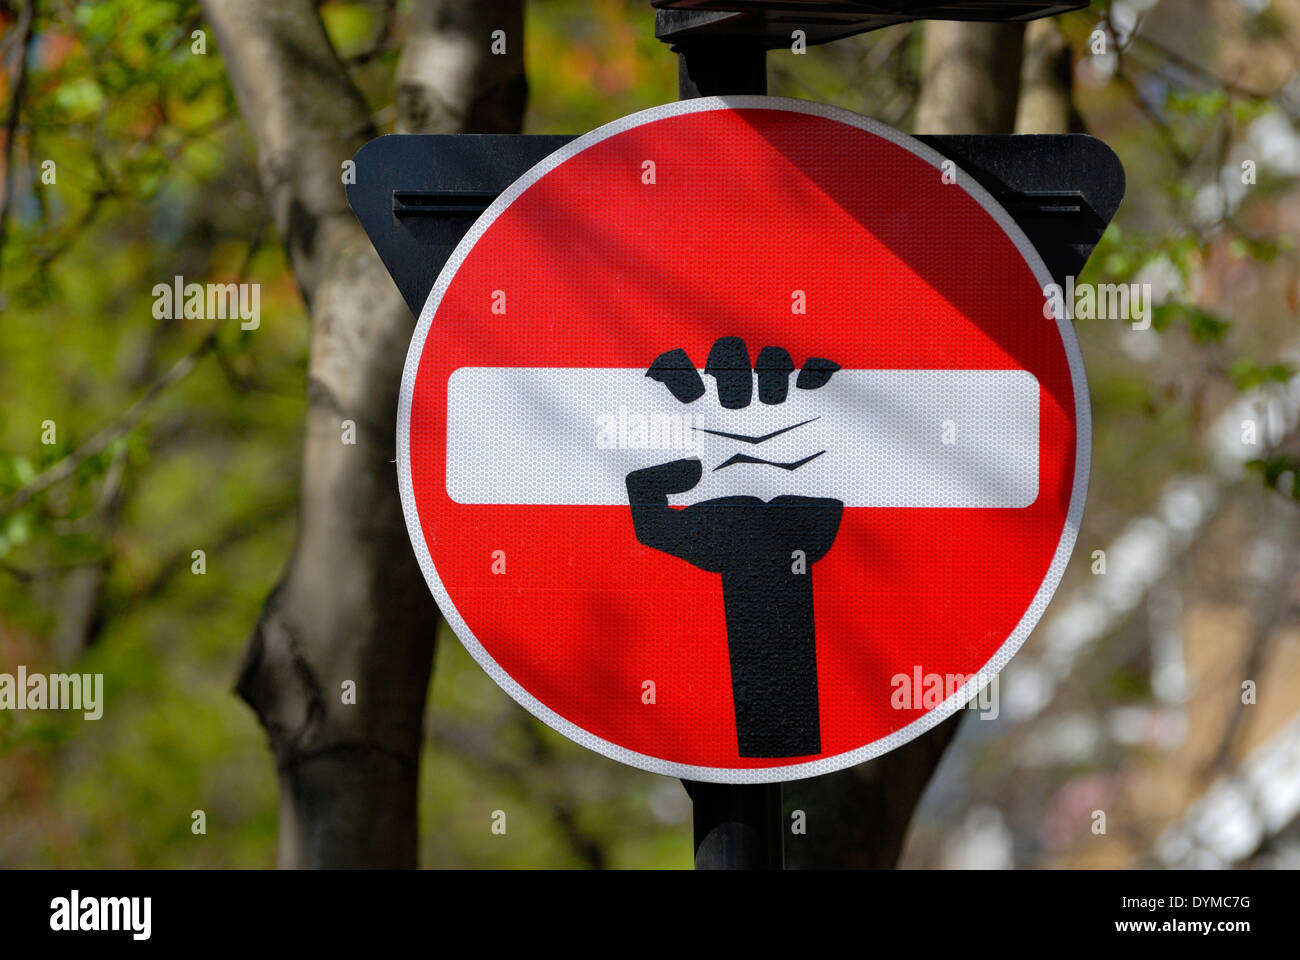 London, England, UK. Defaced traffic sign 'No Entry' near Charing Cross Road (2014) - by artist Clet Abraham - Stock Image